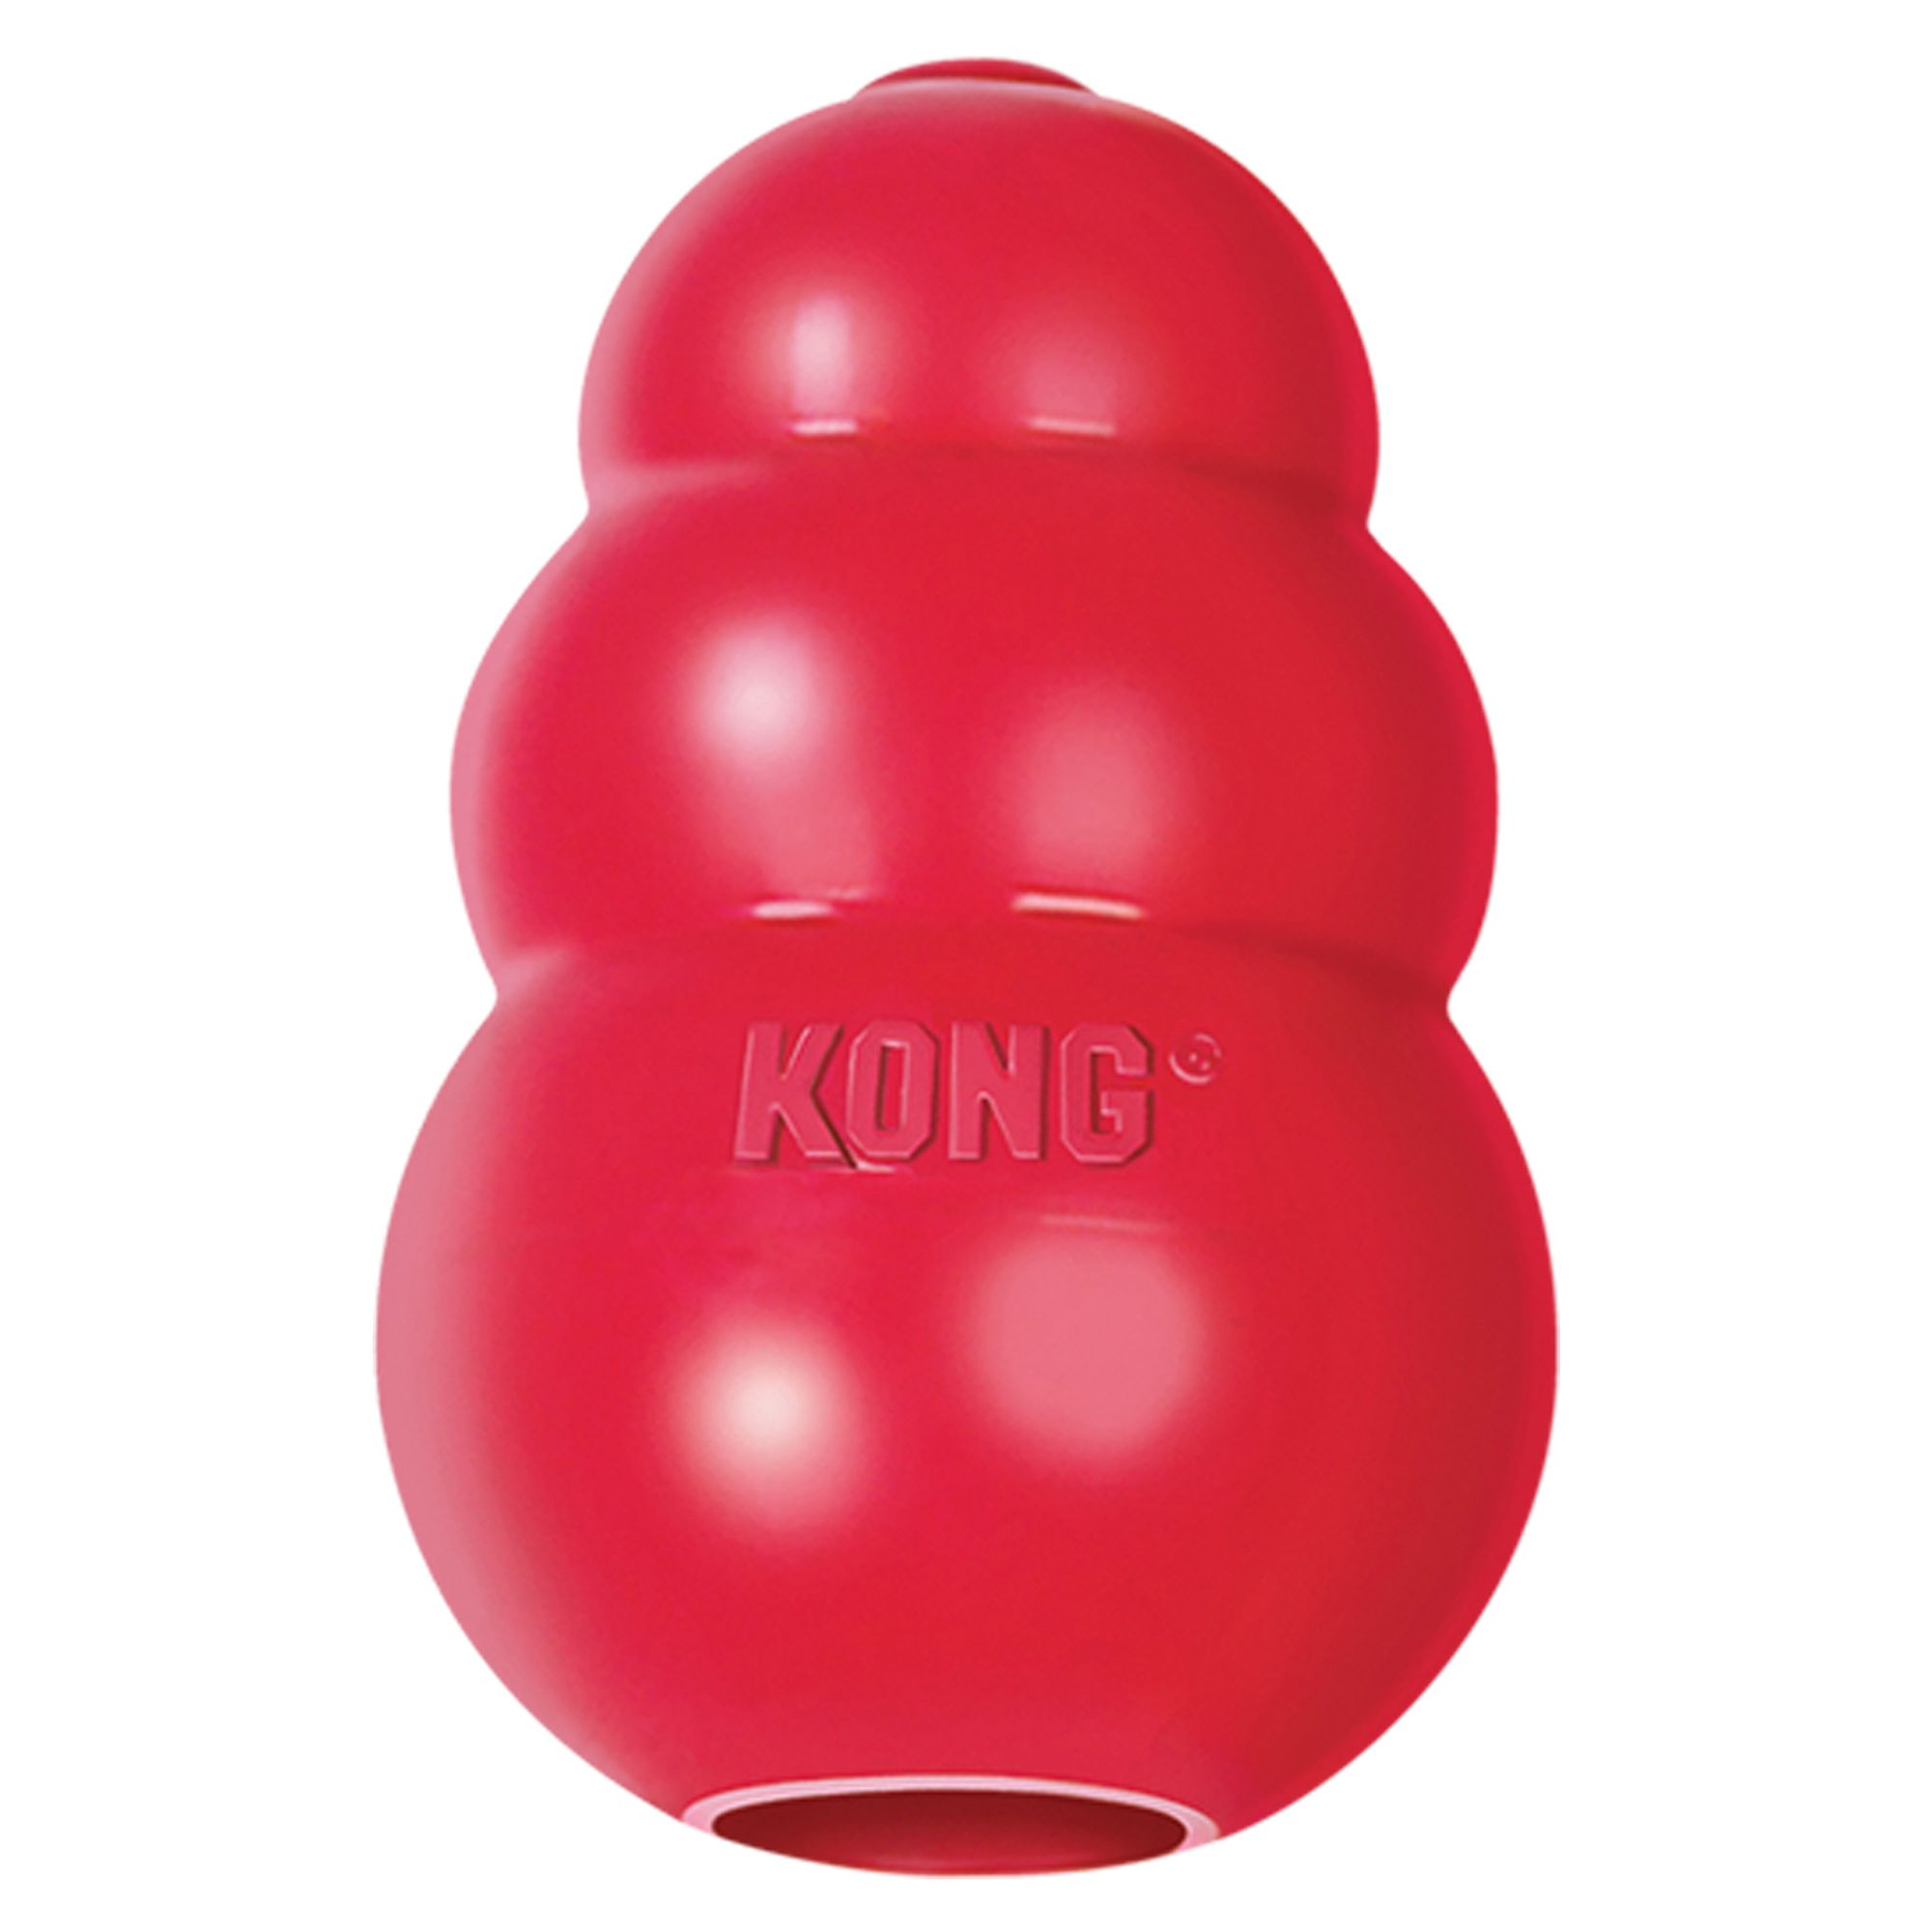 Kong Classic Dog Toy - Treat Dispensing size: X Small, Red 5164381